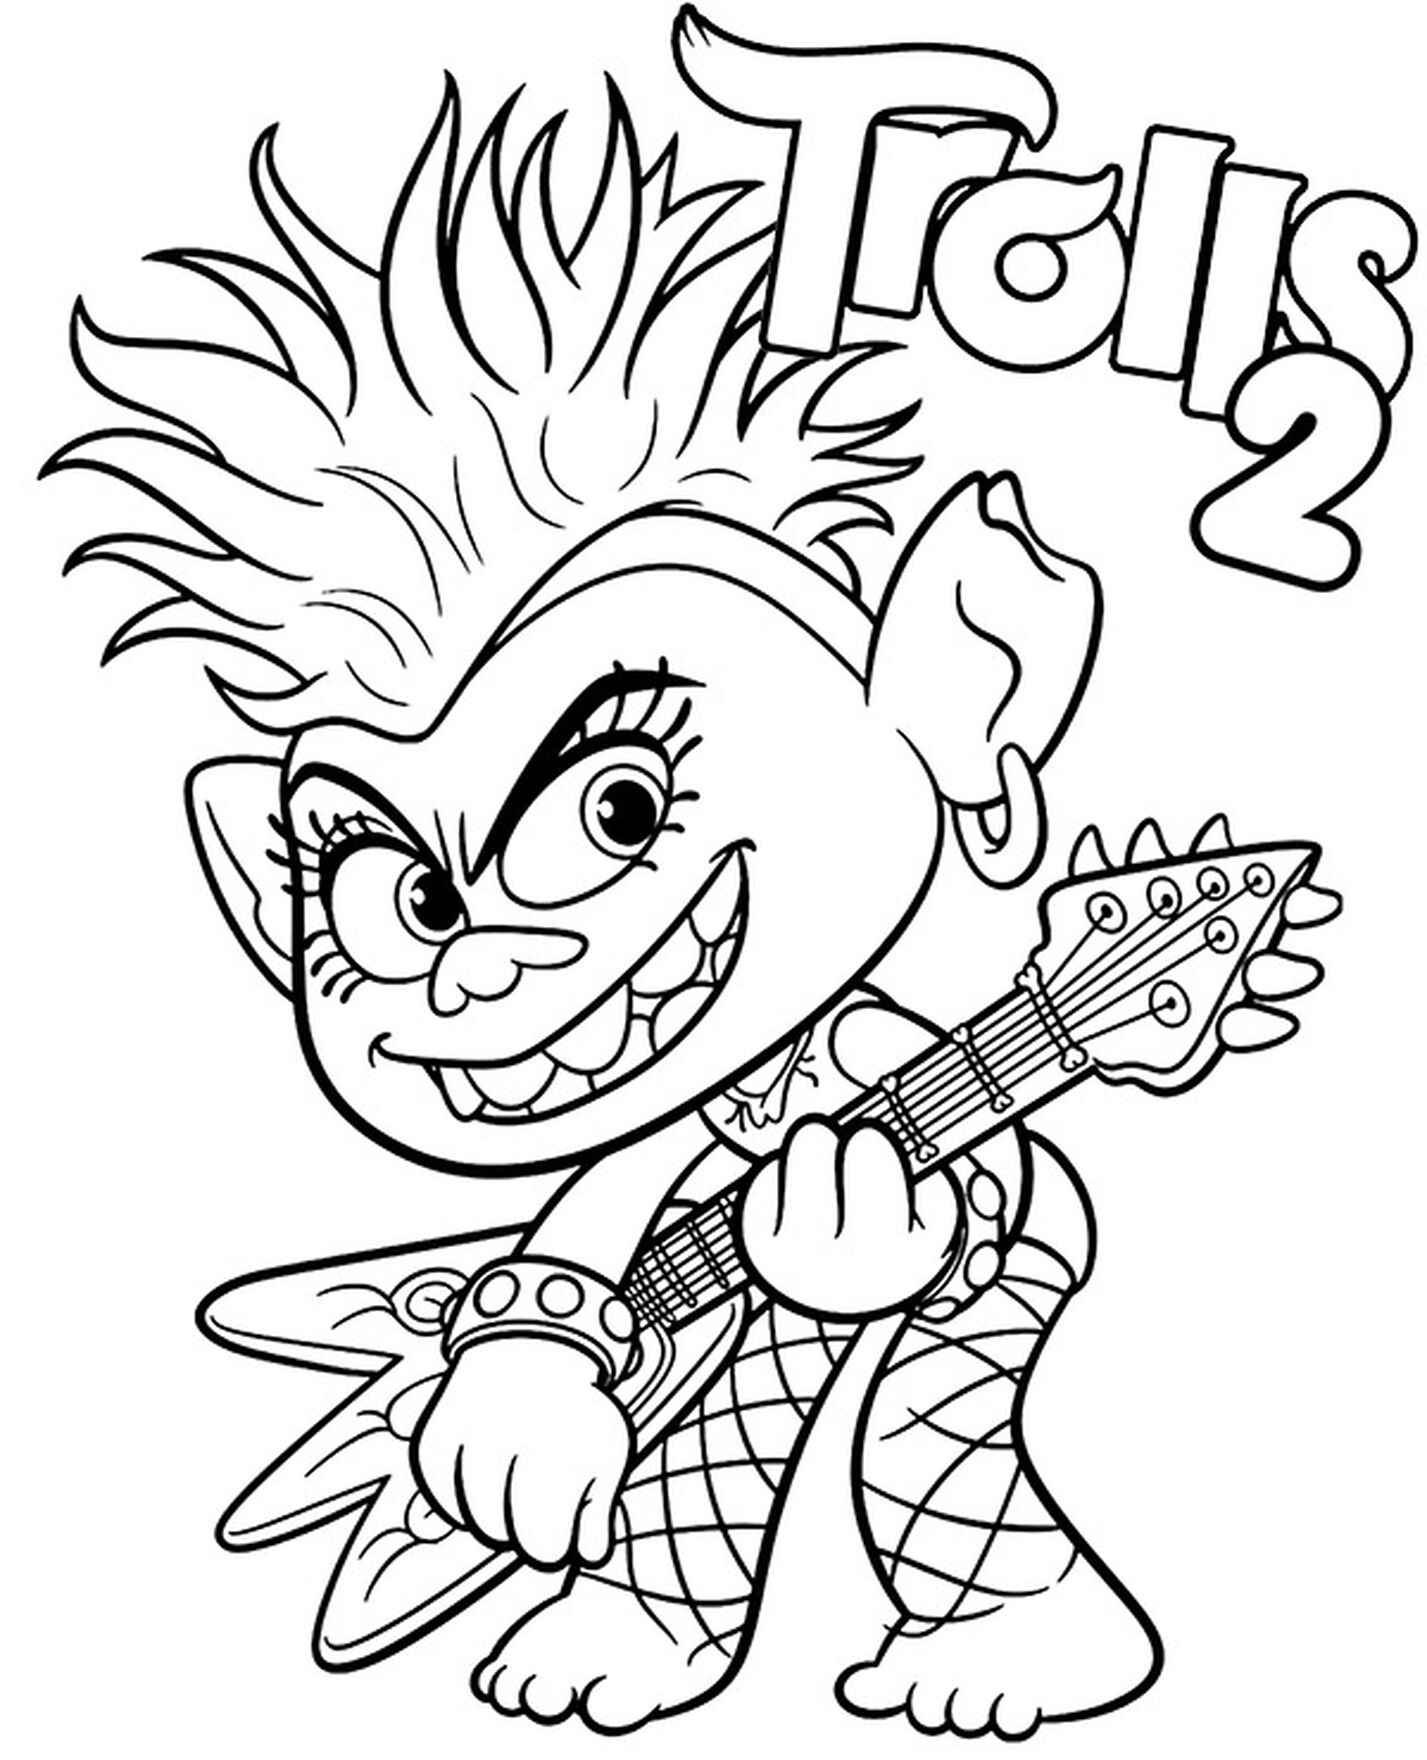 Trolls Coloring Page Barb